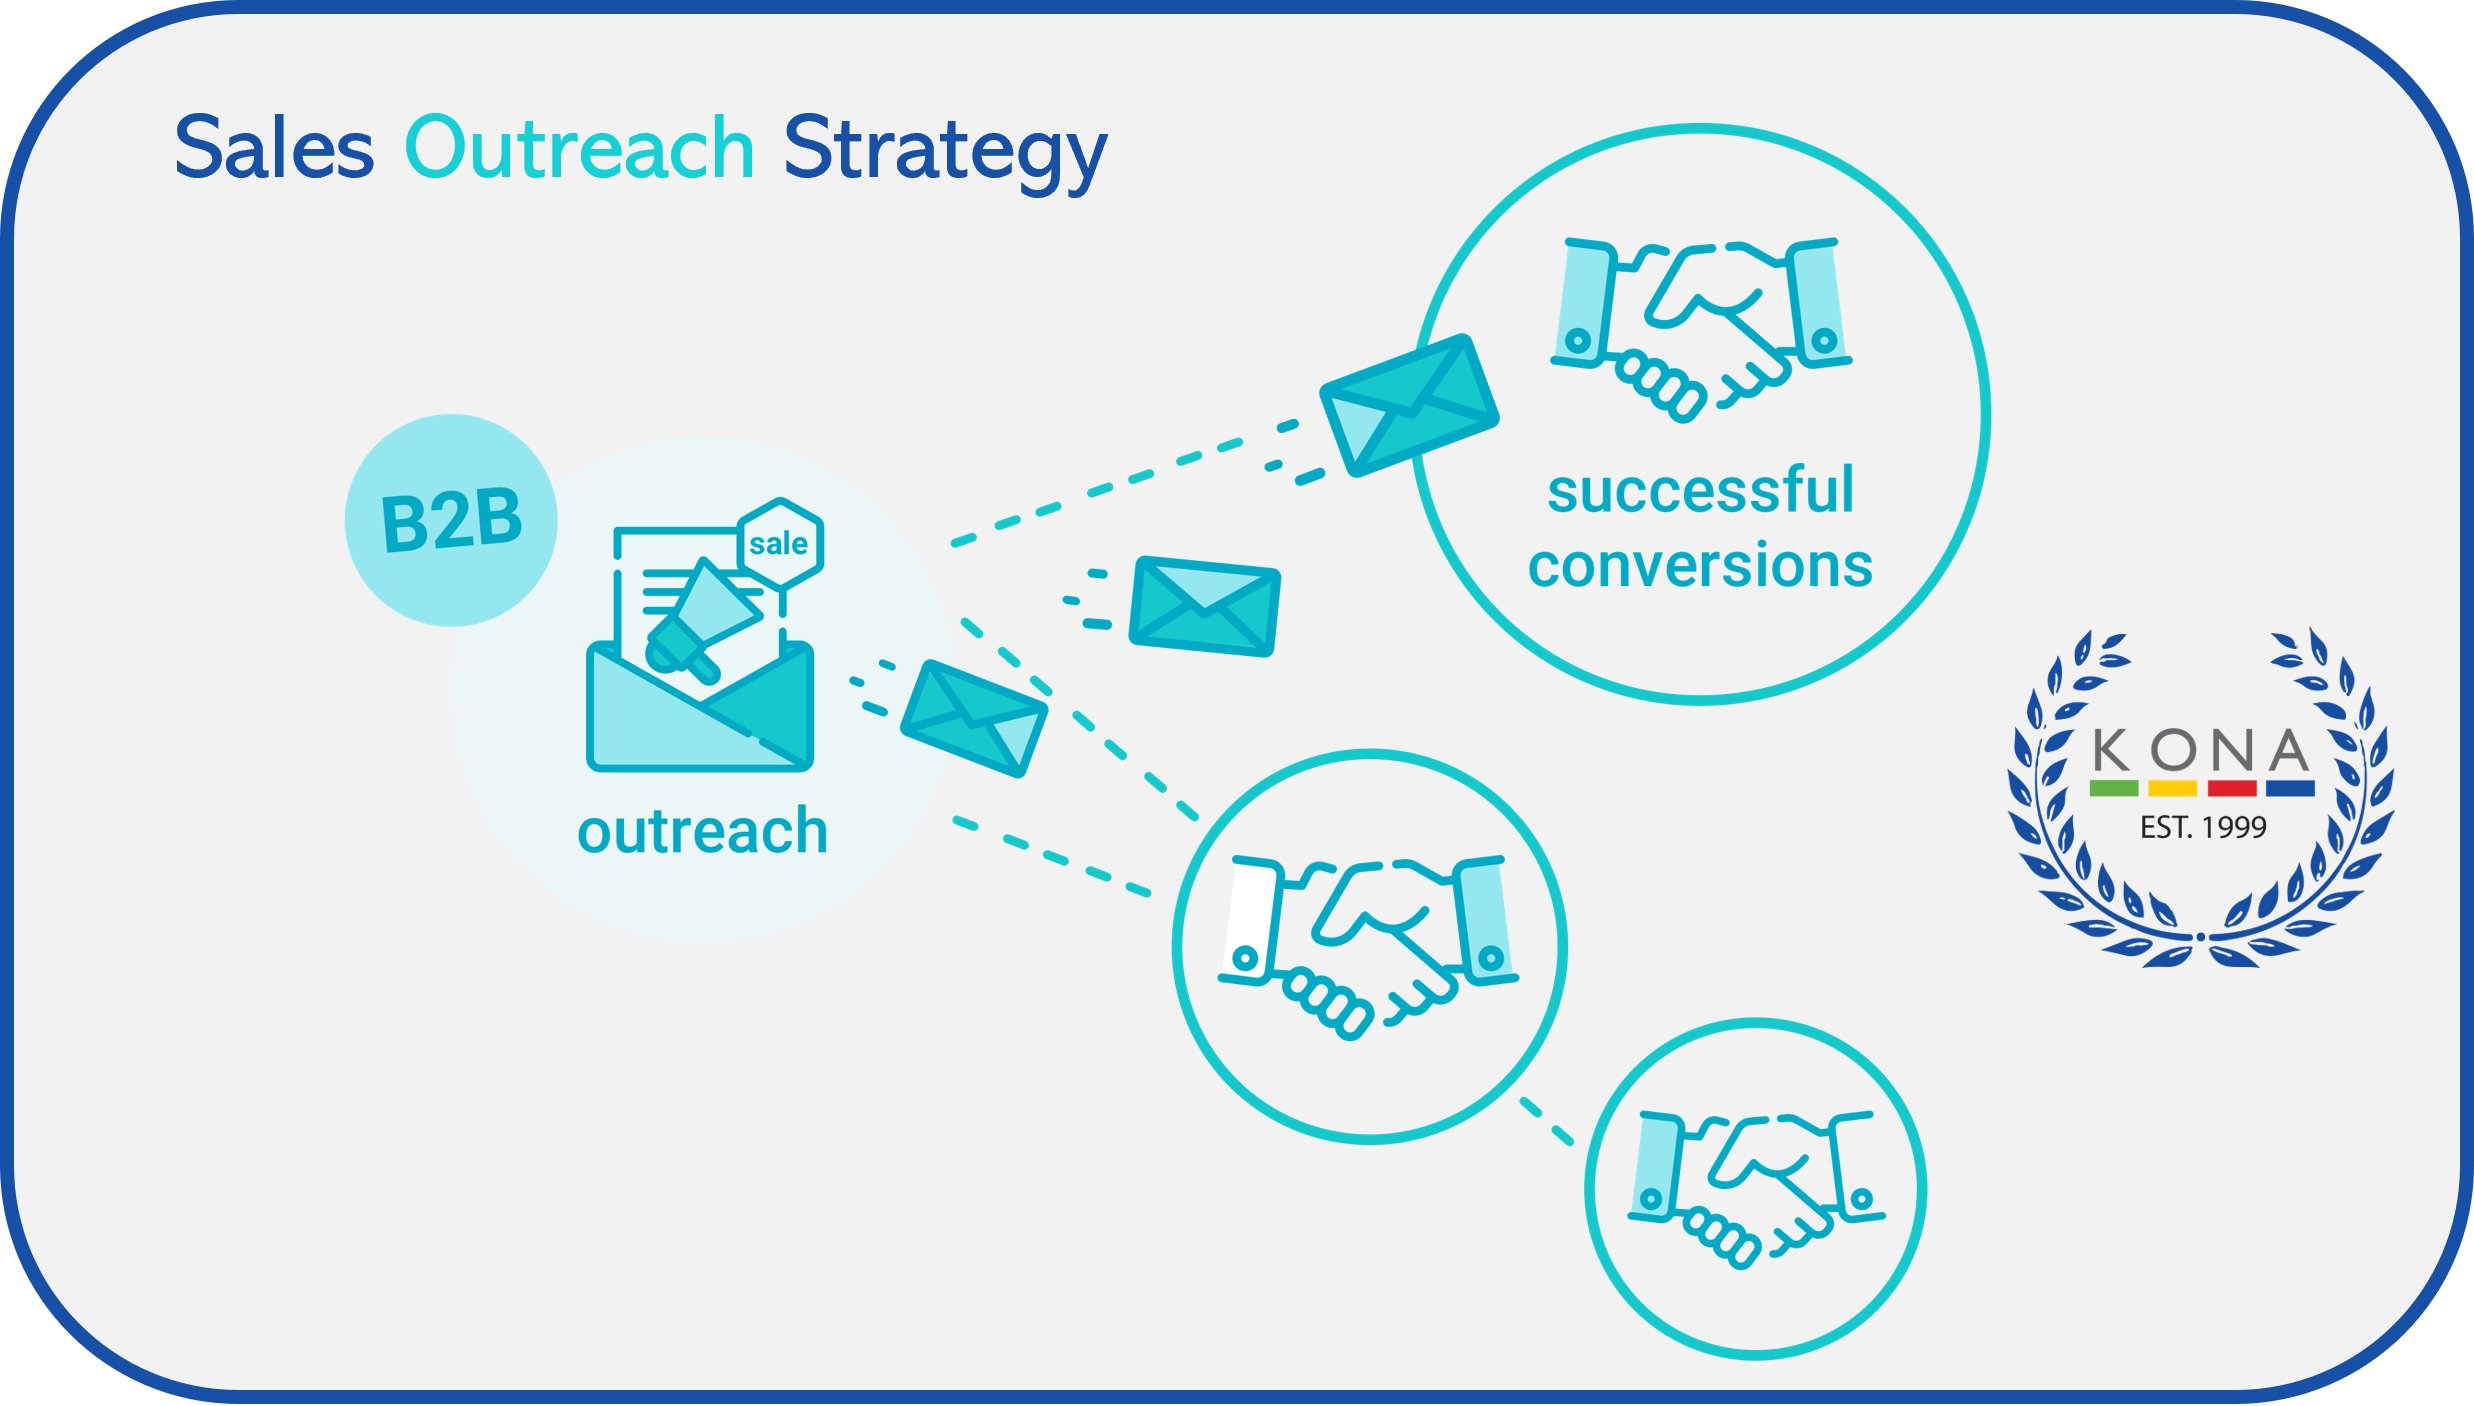 Sales Outreach Strategy Model for the KONA Group